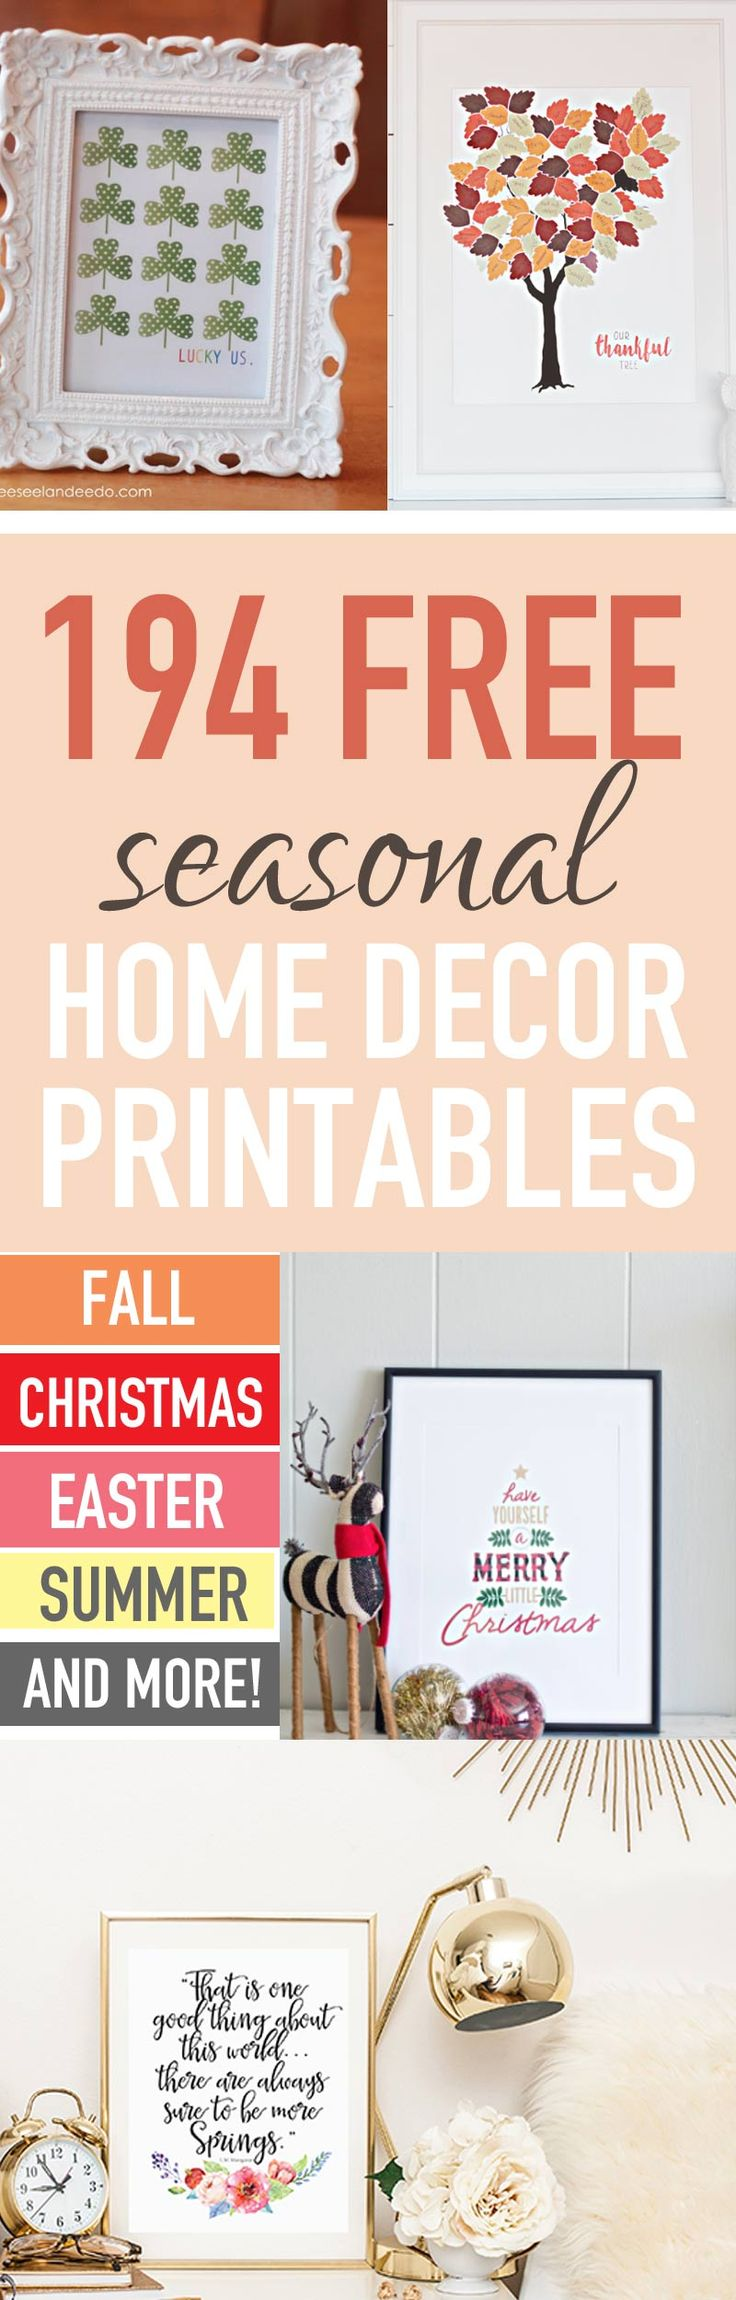 Whoa--you won't believe this list of 194 FREE SEASONAL HOME DECOR PRINTABLES! There's home decor prints for Christmas, Fall, Easter, Spring, New Year's, Mother's Day, Summer and more! This is a great post to reference over and over throughout the year for seasonal decorating!